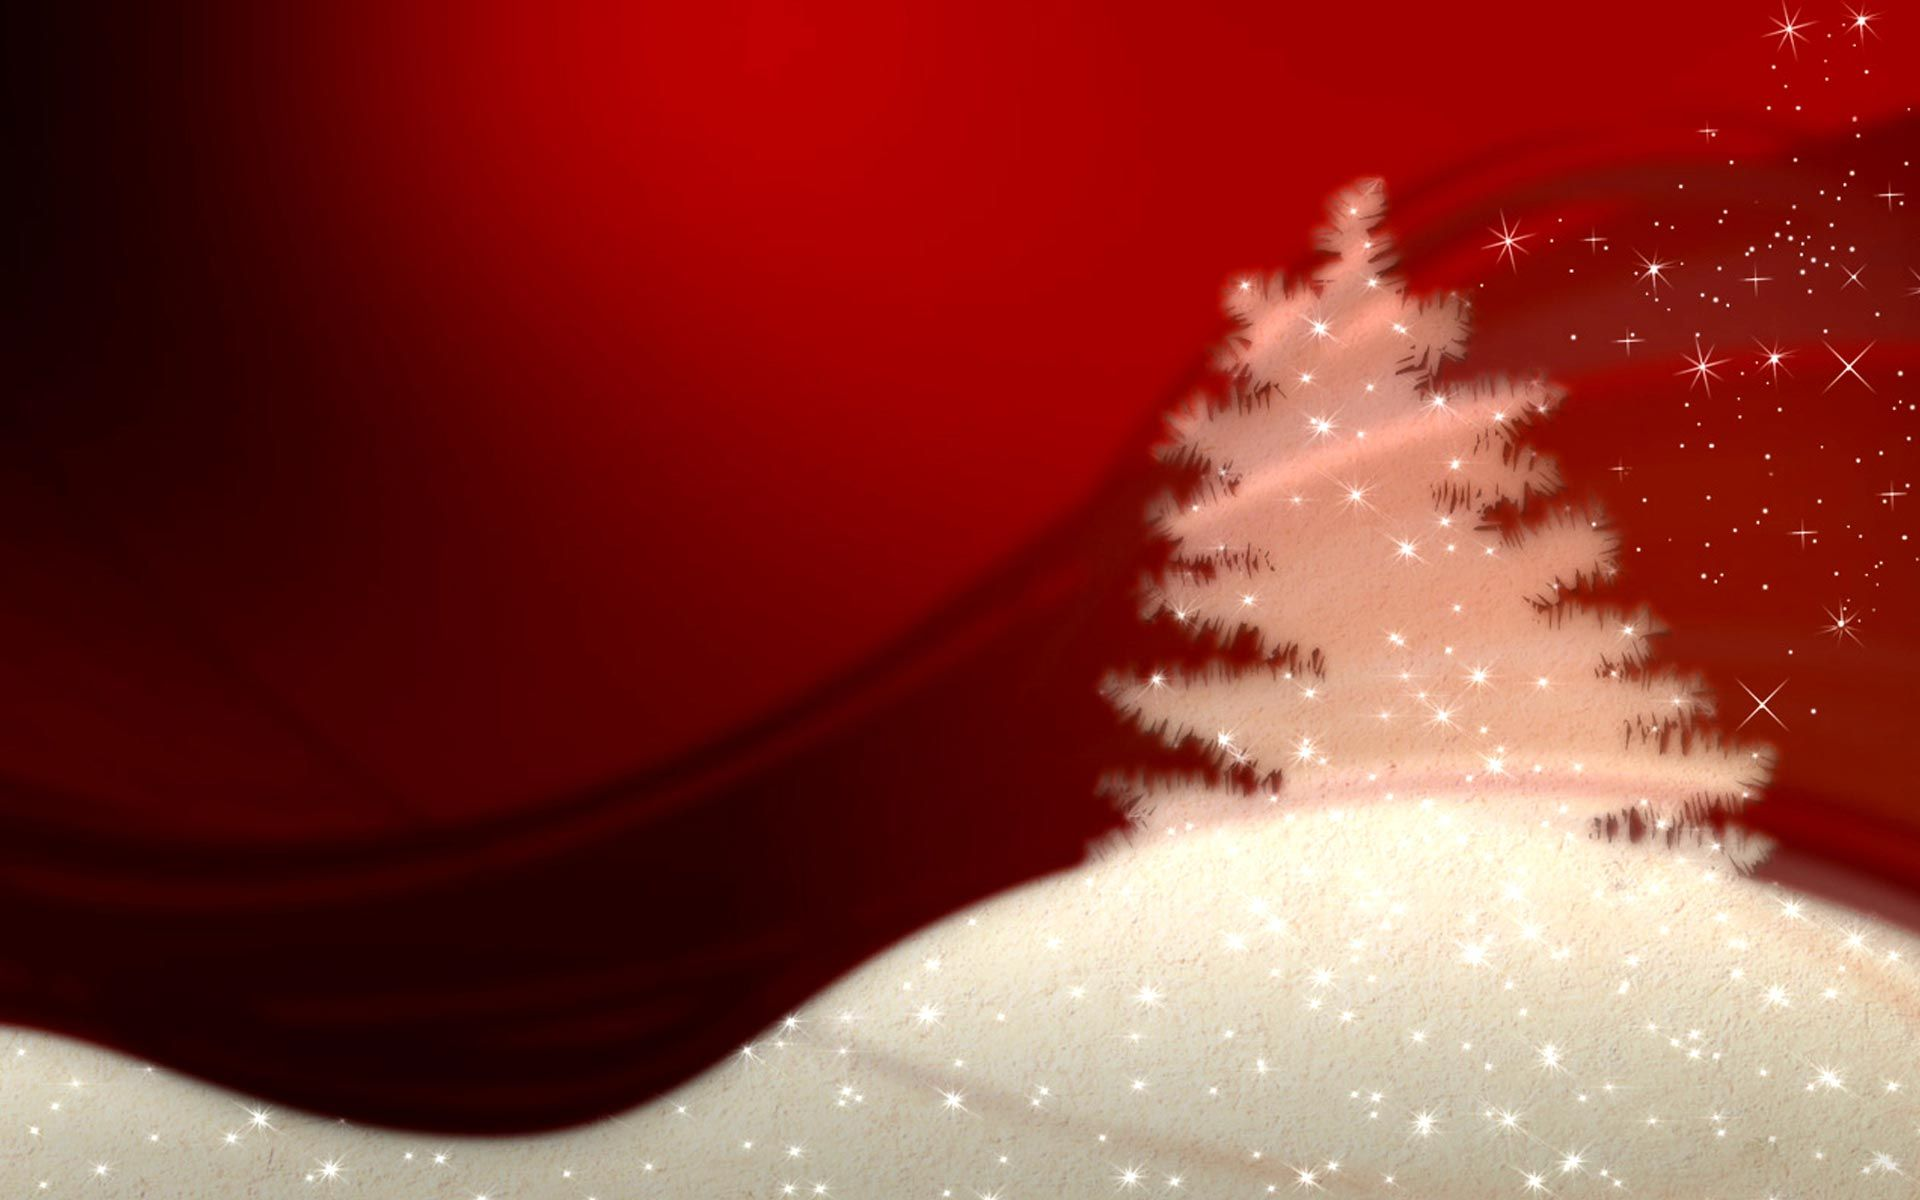 best merry christmas desktop background for pc laptop mac happy